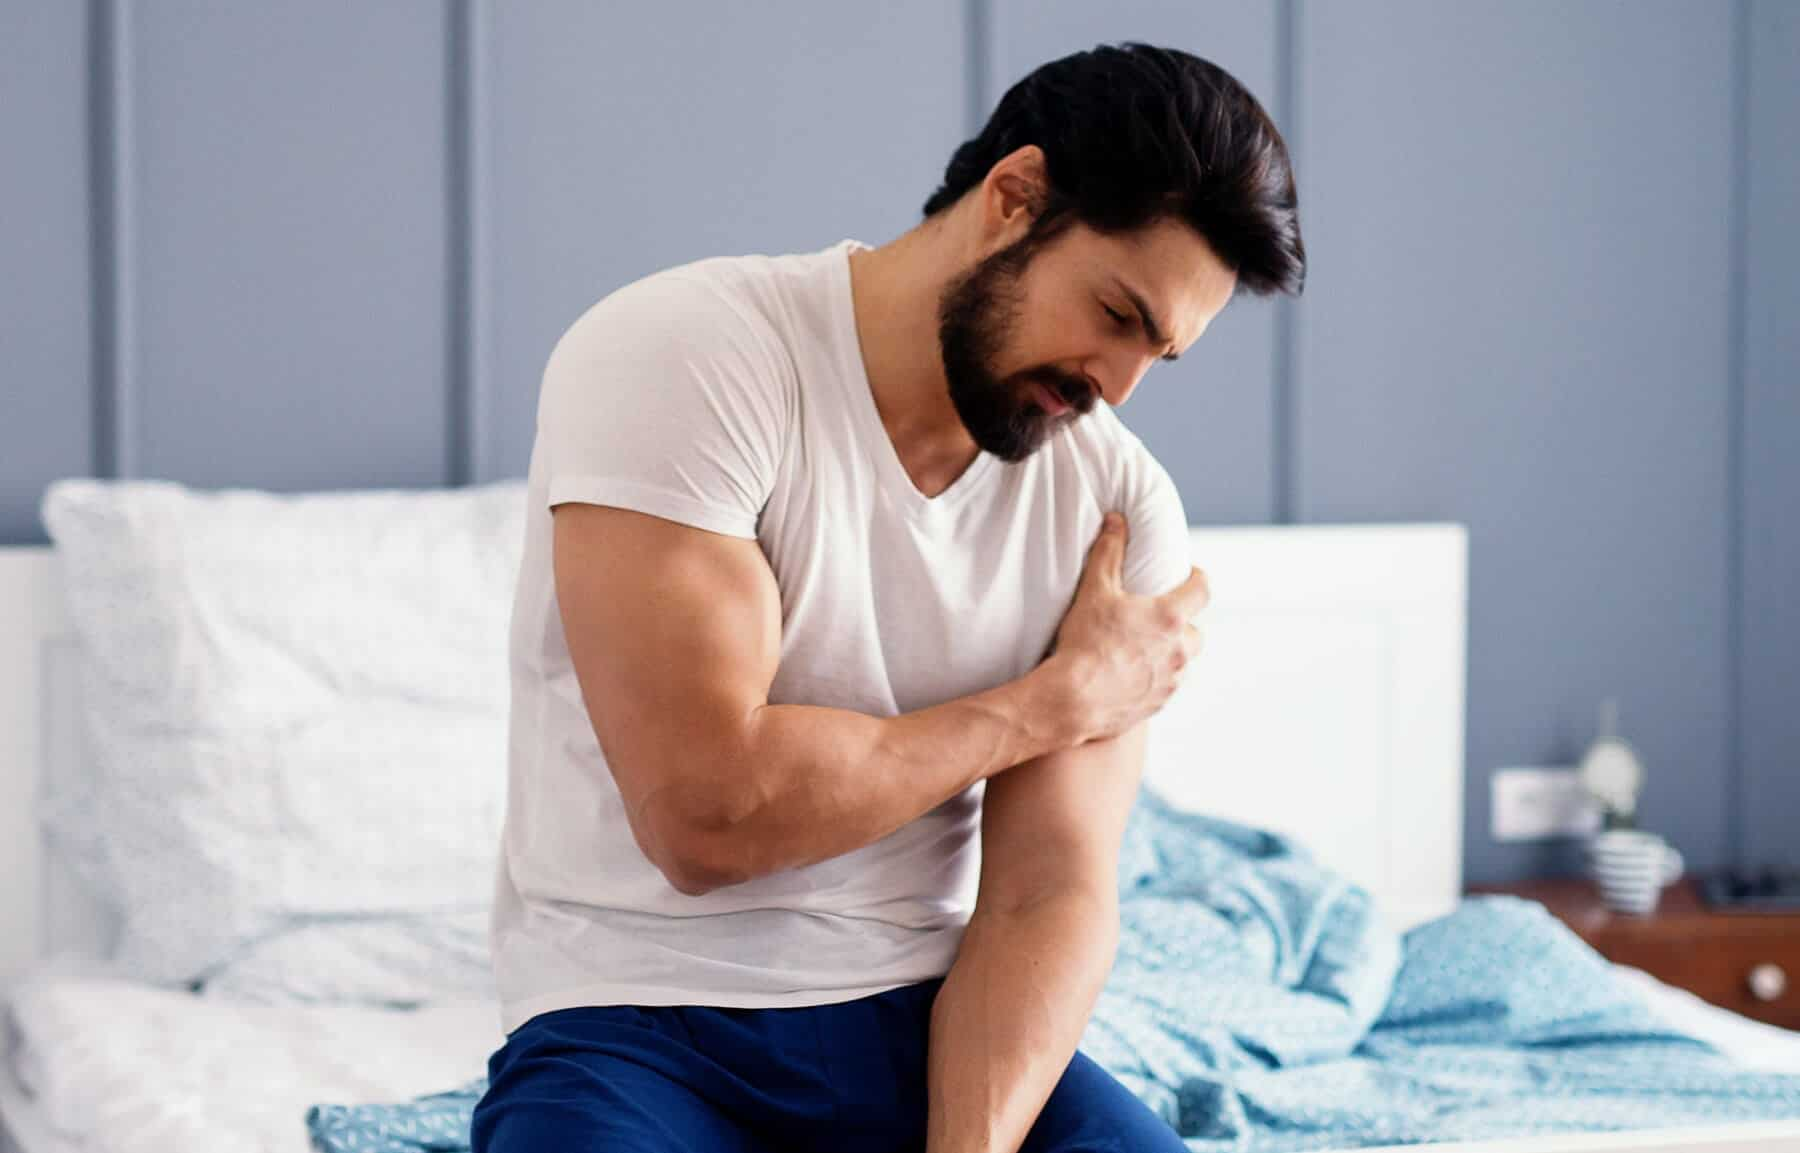 Shoulder Pain After Prolonged Exercise?